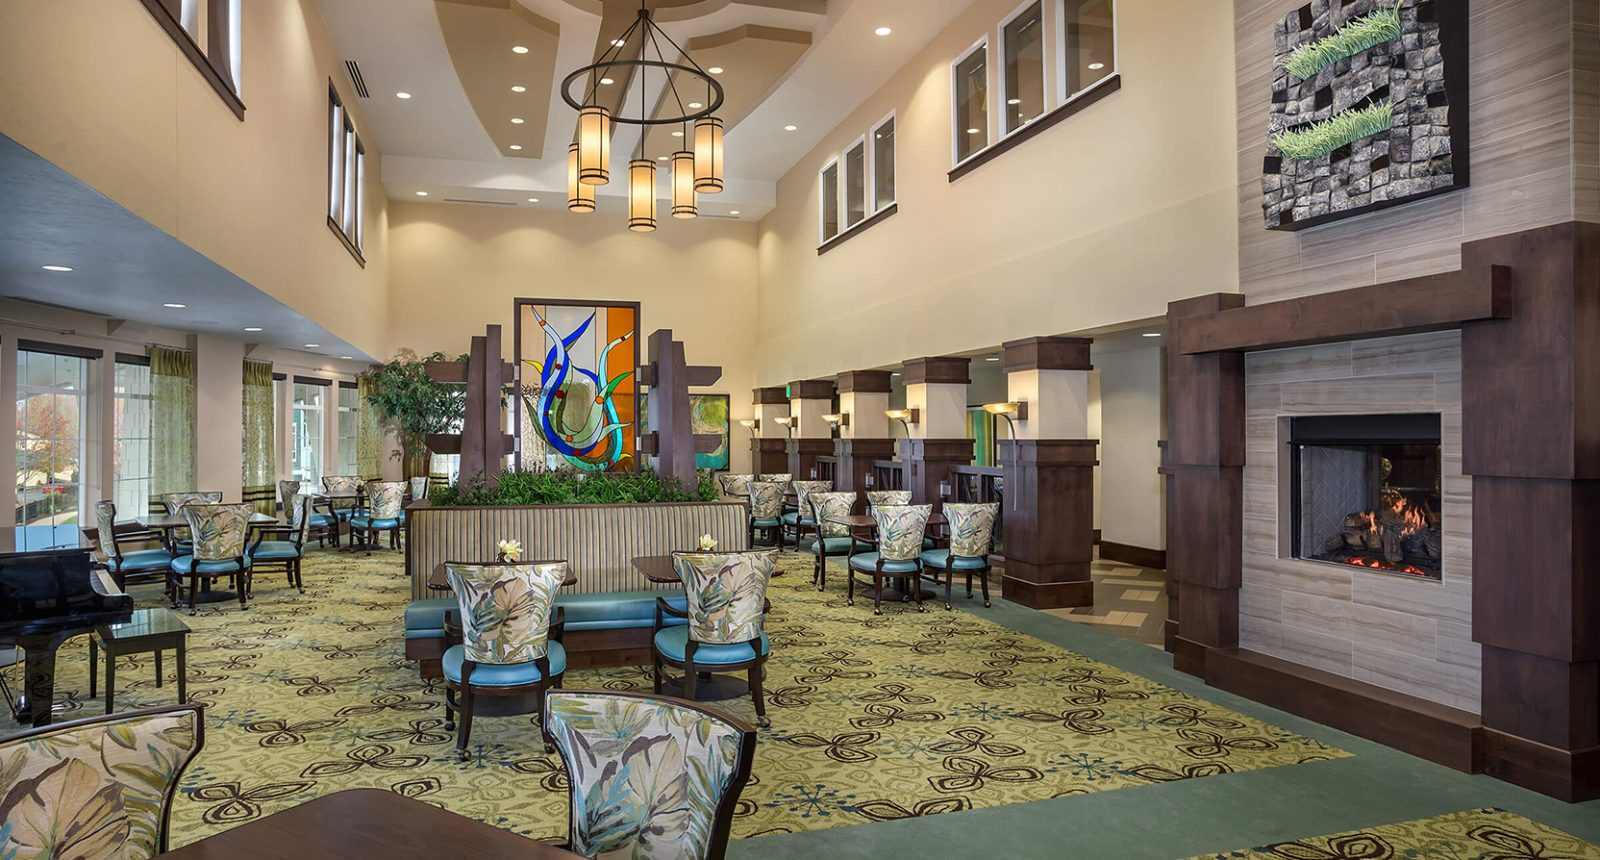 Senior housing community interior with vaulted ceilings and seating for guests and residents